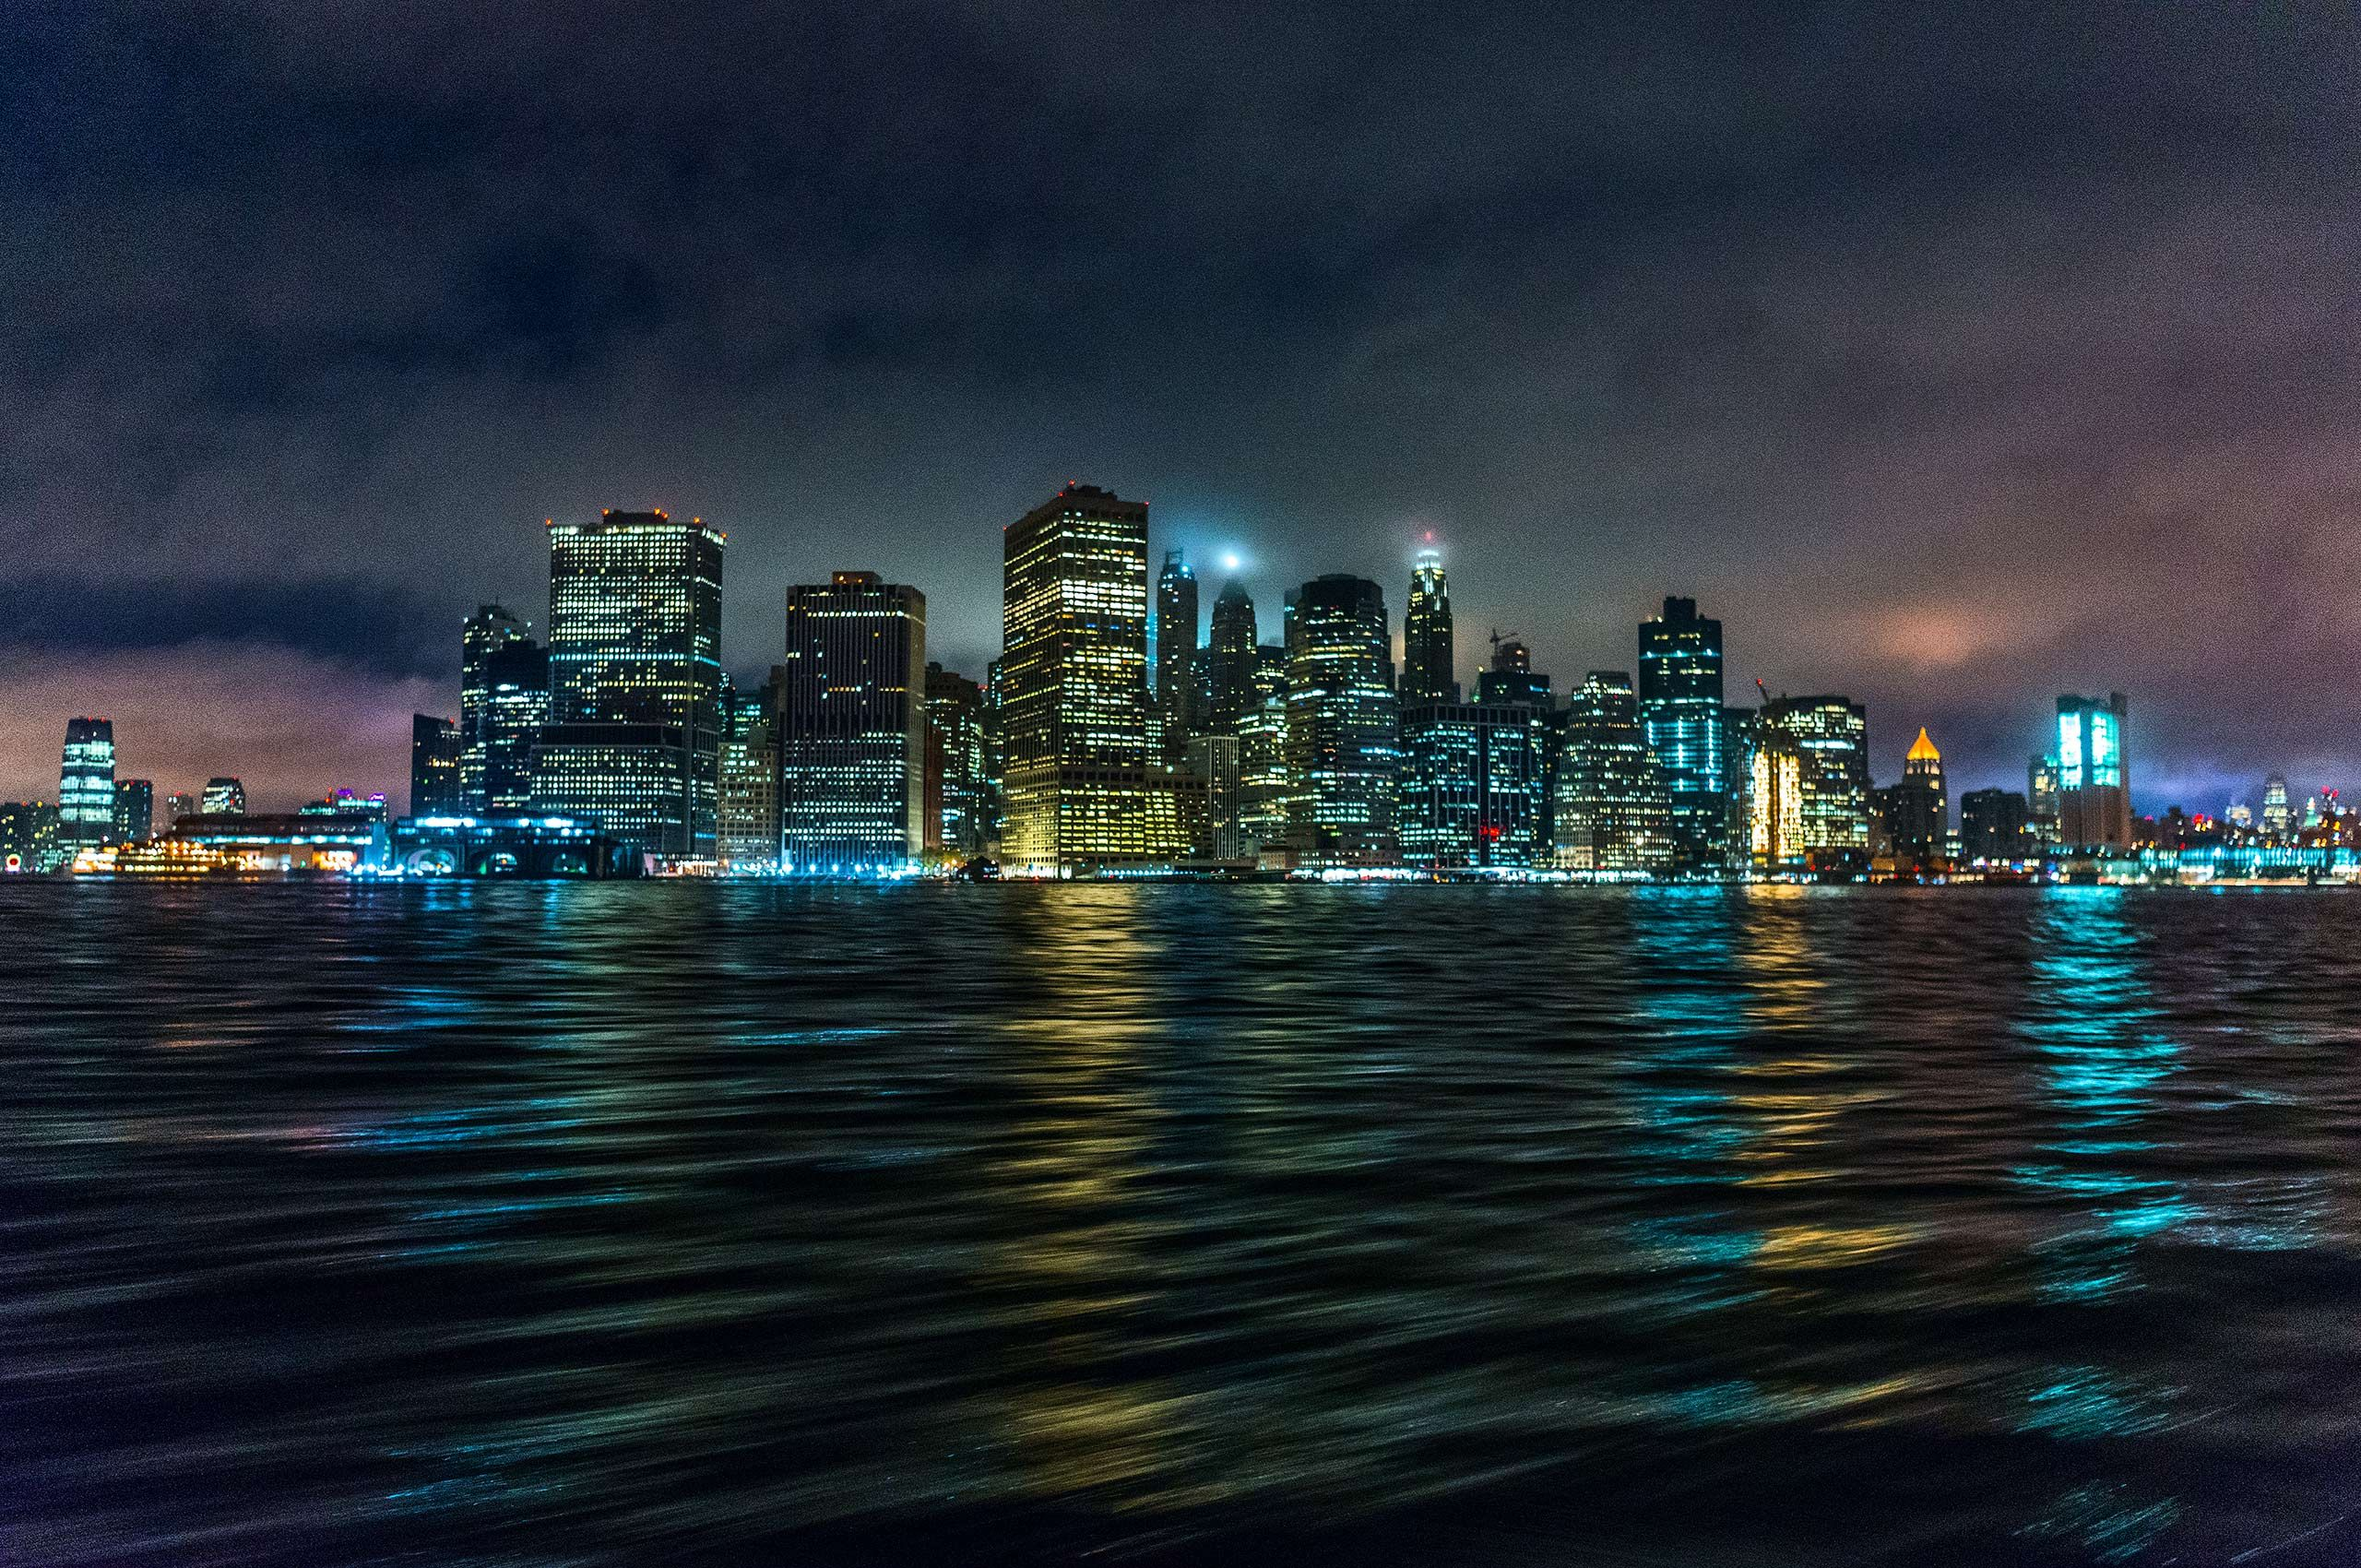 Cityscape-Night-Sea-Water-NewYork-Downtown-HenrikOlundPhotography.jpg